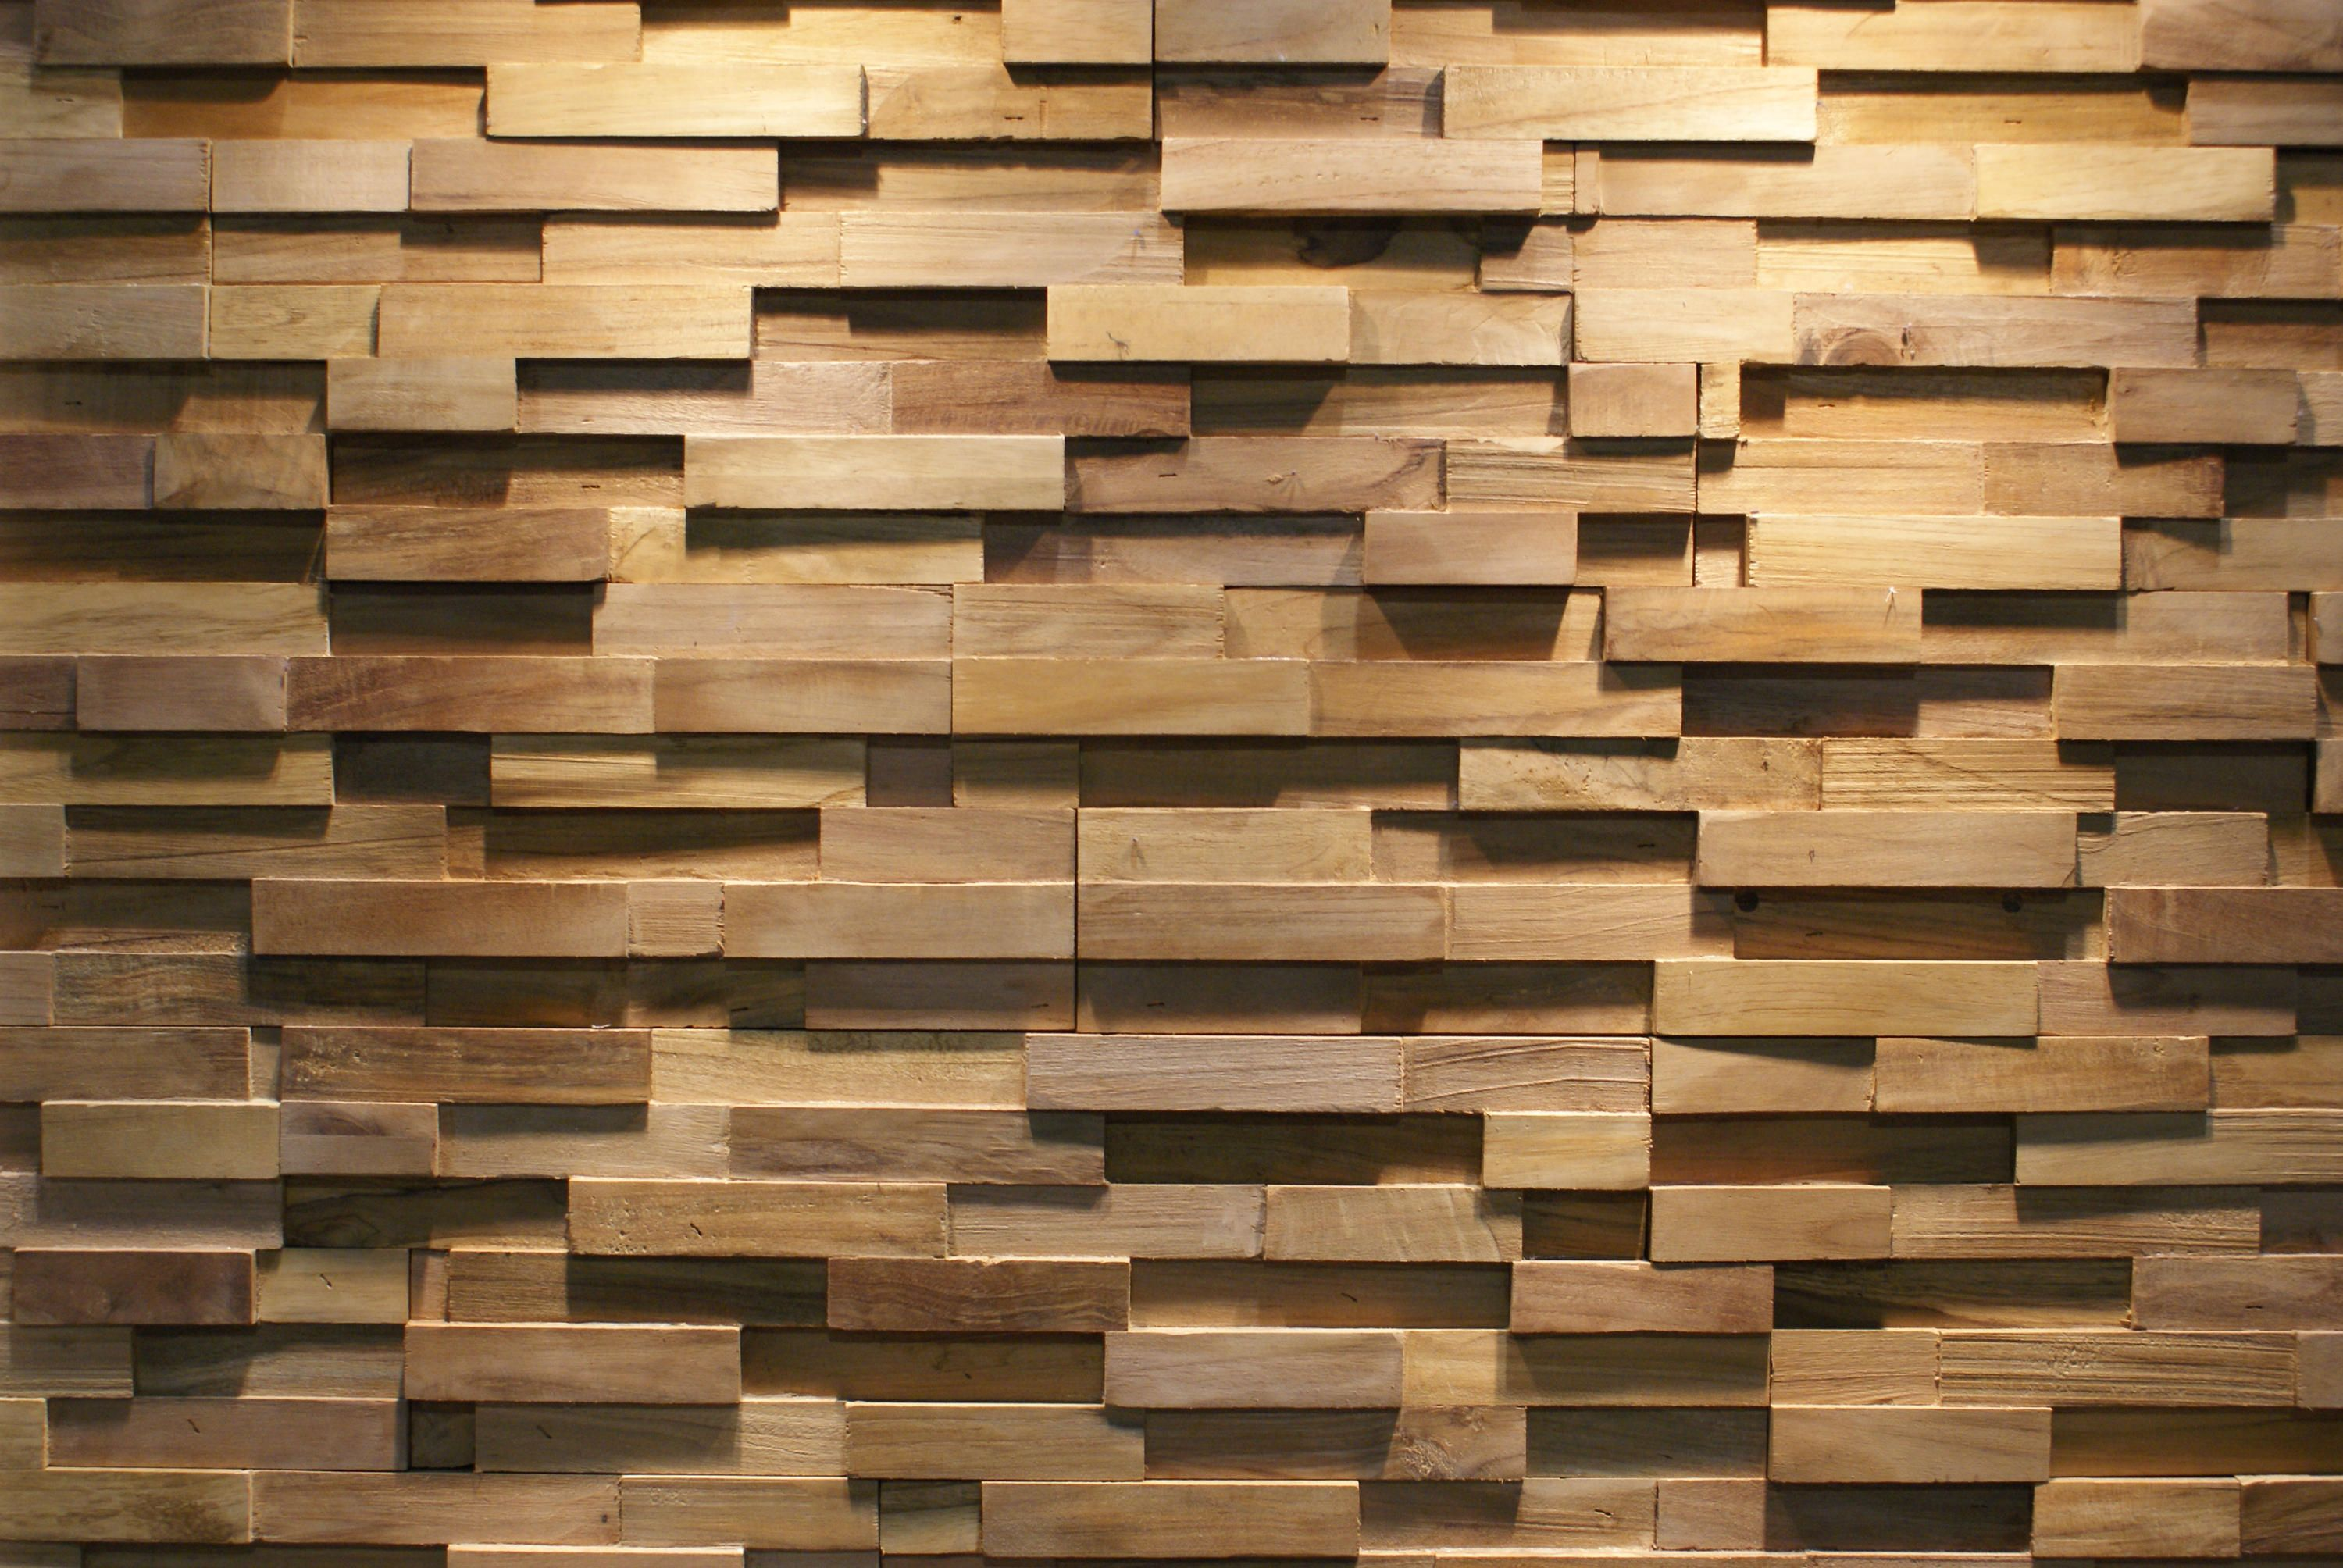 Java Sp Straight Designer Wood Panels From Teak Your Wall All Information High Resolution Images Cads Cat Teak Wall Wood Wall Tiles Wood Feature Wall